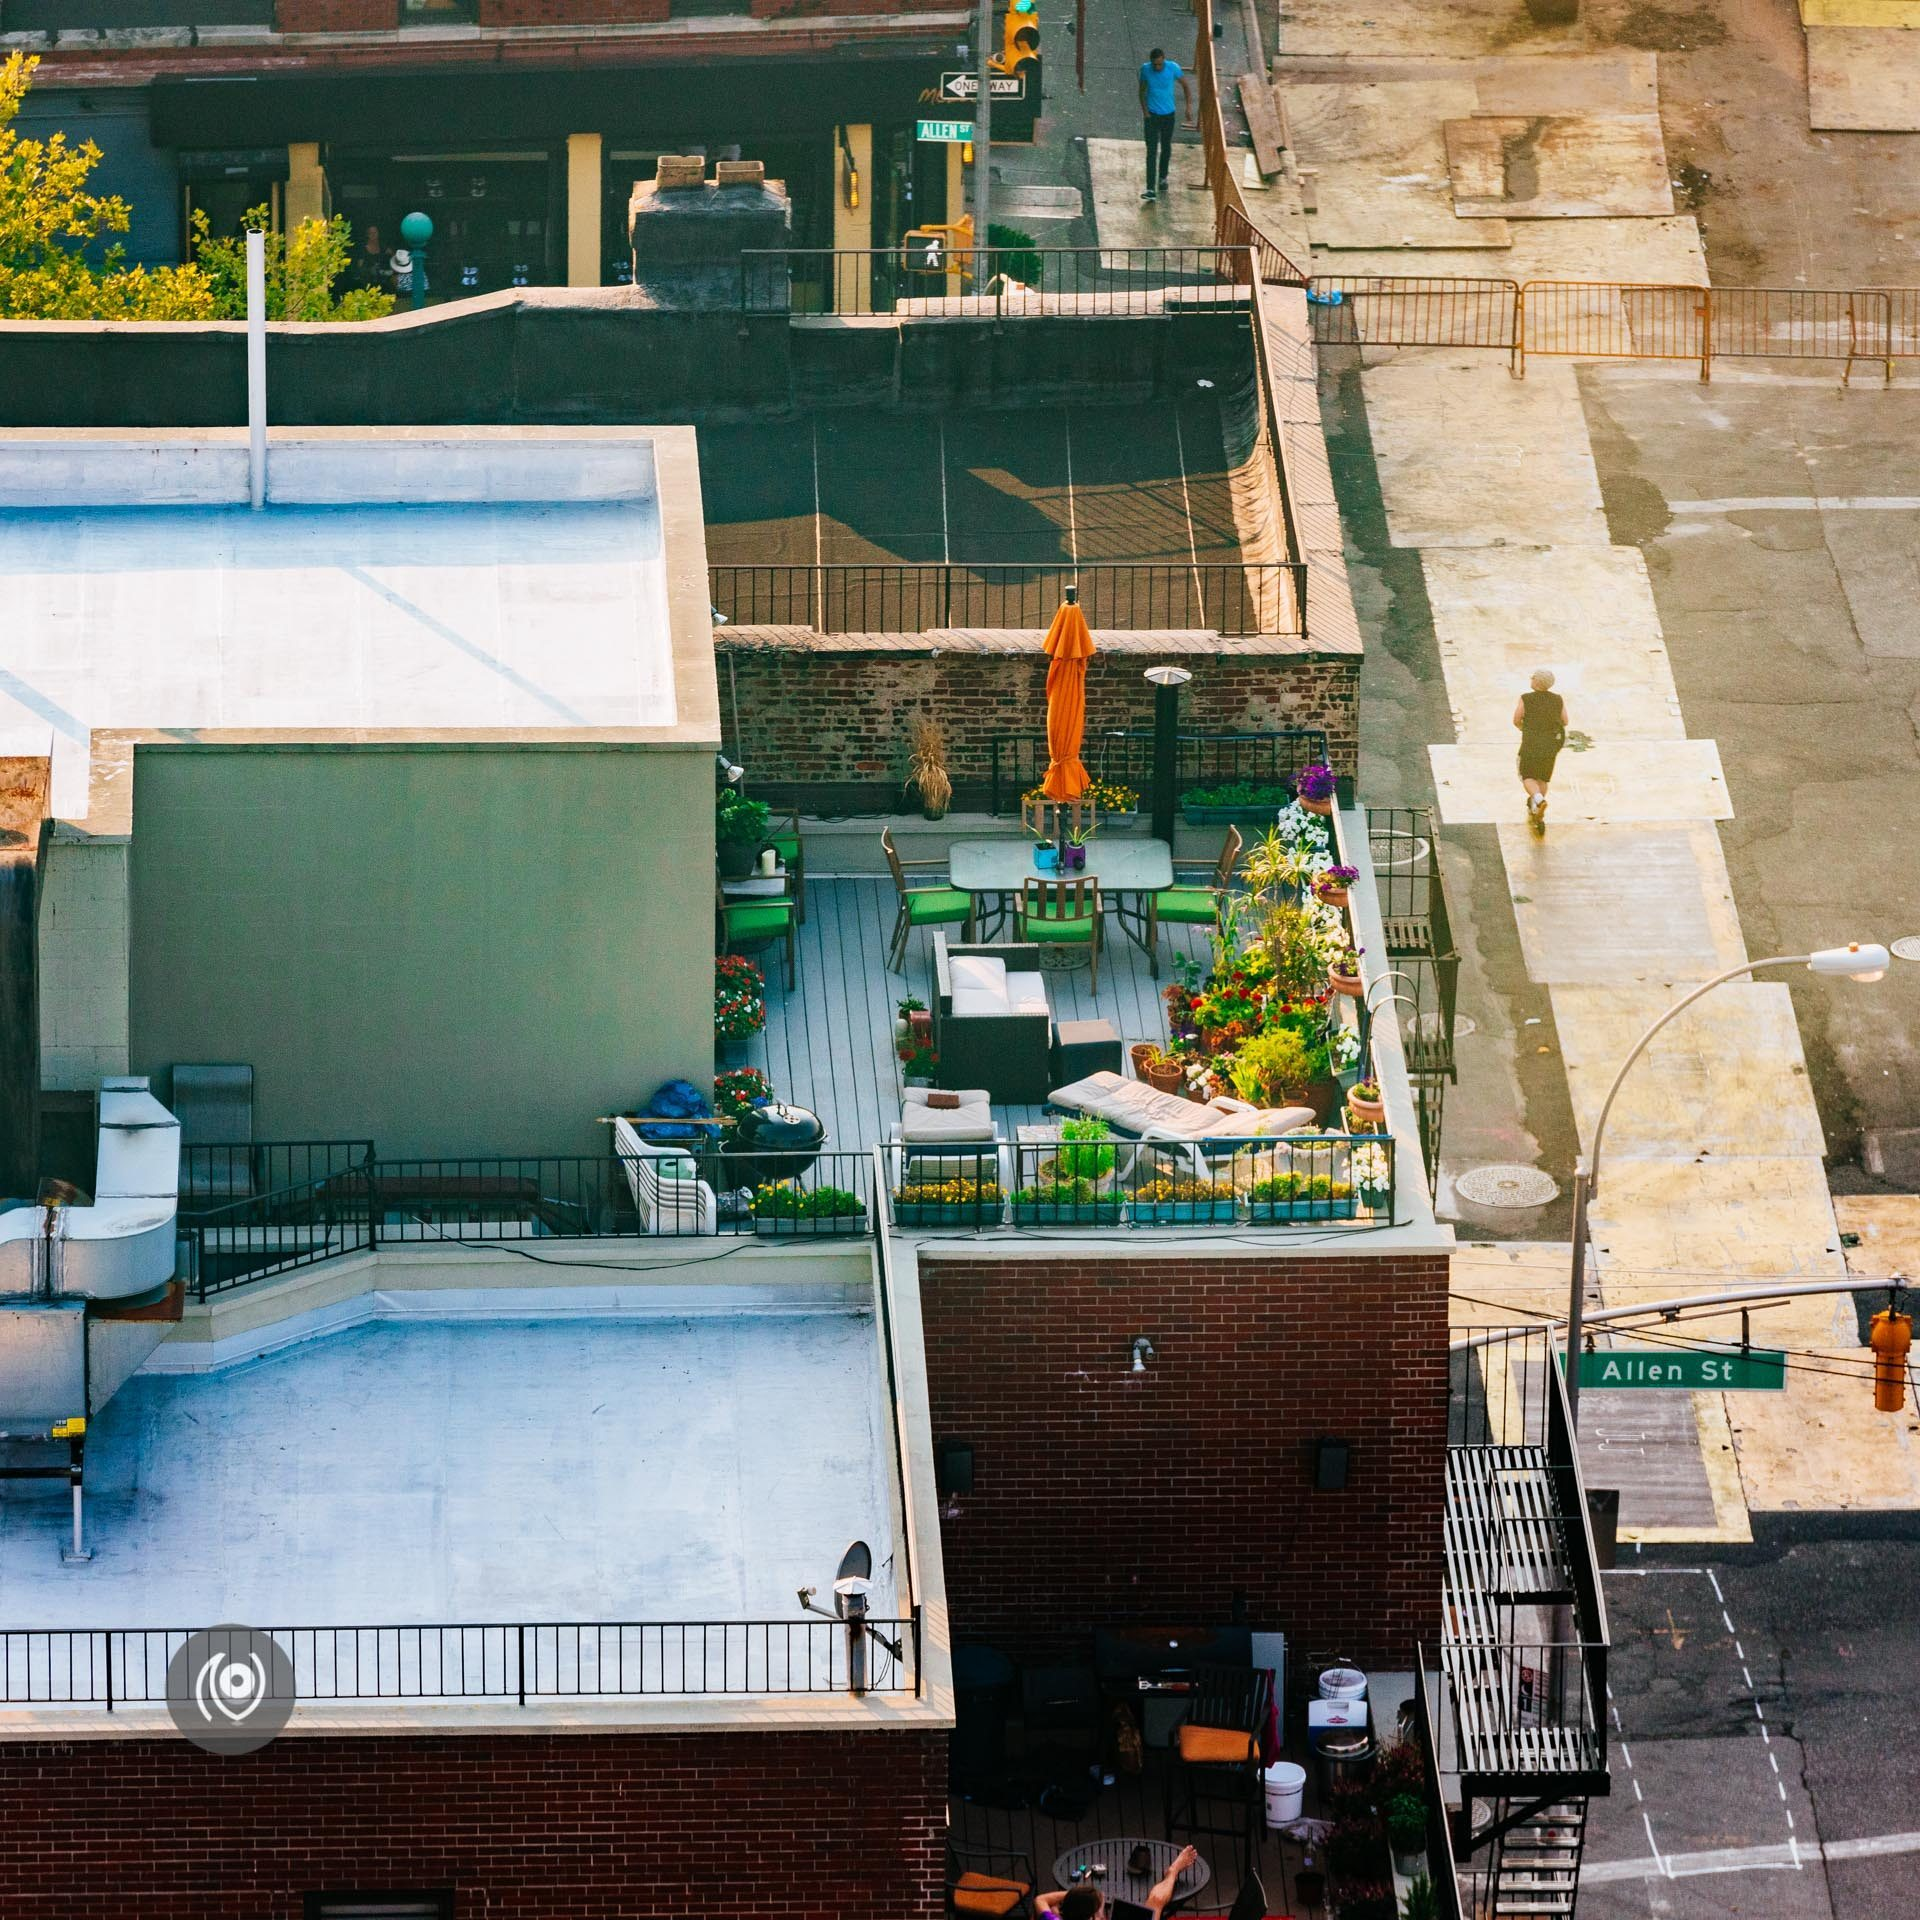 Apartment View #Eyesfornewyork #Redhuxnyc #Redhuxairbnb Nainaco Luxury & Lifestyle, Photographer